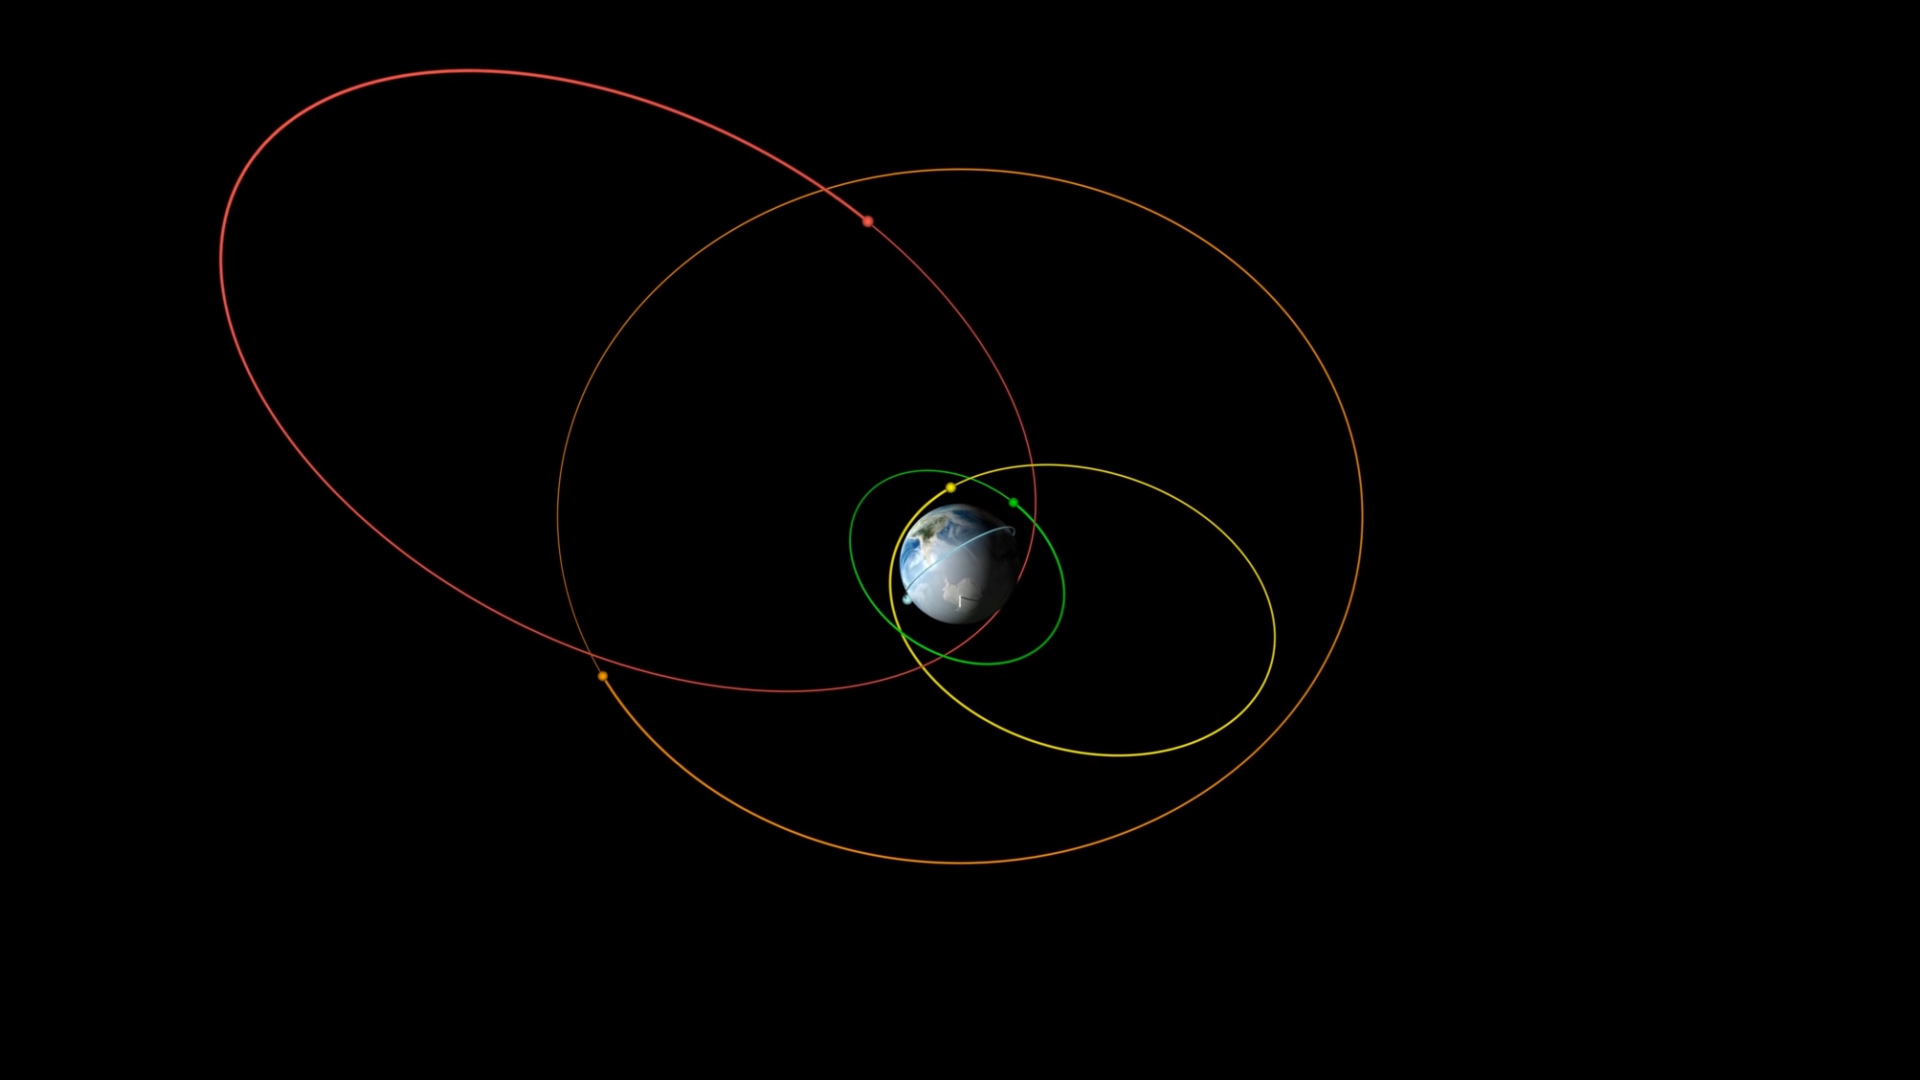 Kepler's Laws of Planetary Motion Described Using Earth Satellites